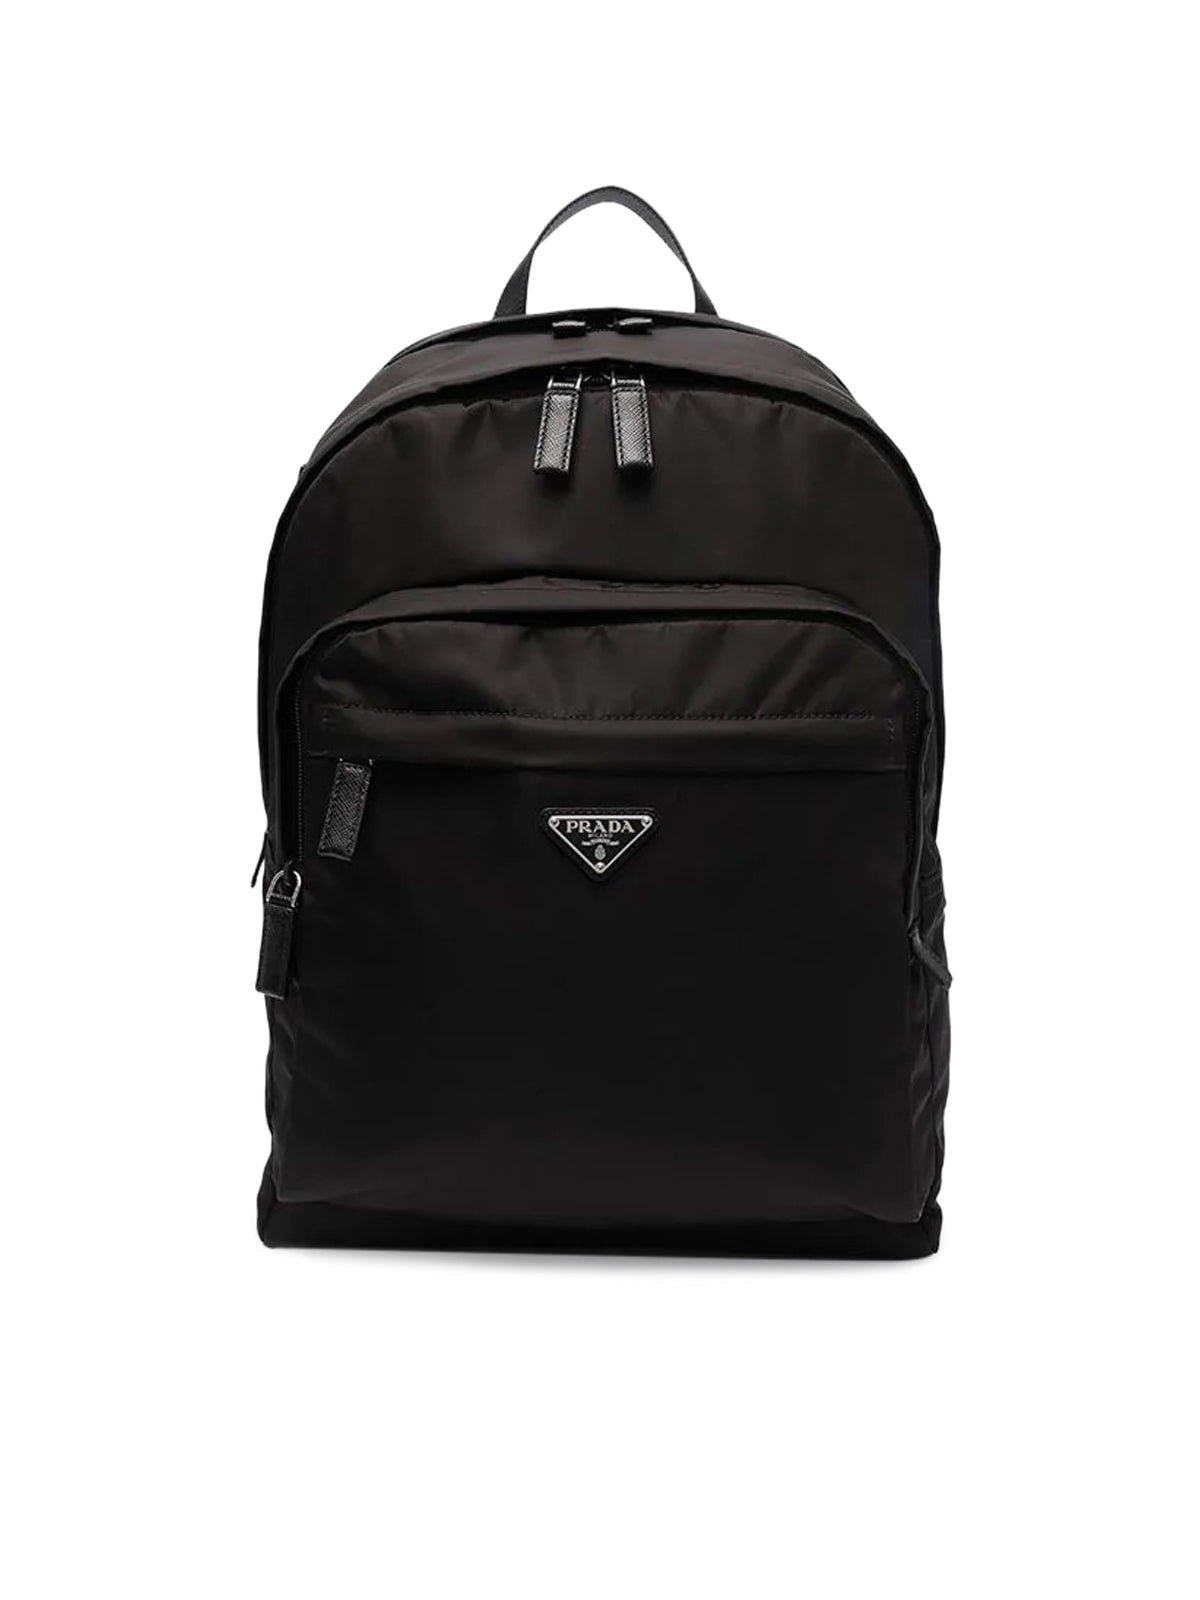 logo-plaque backpack